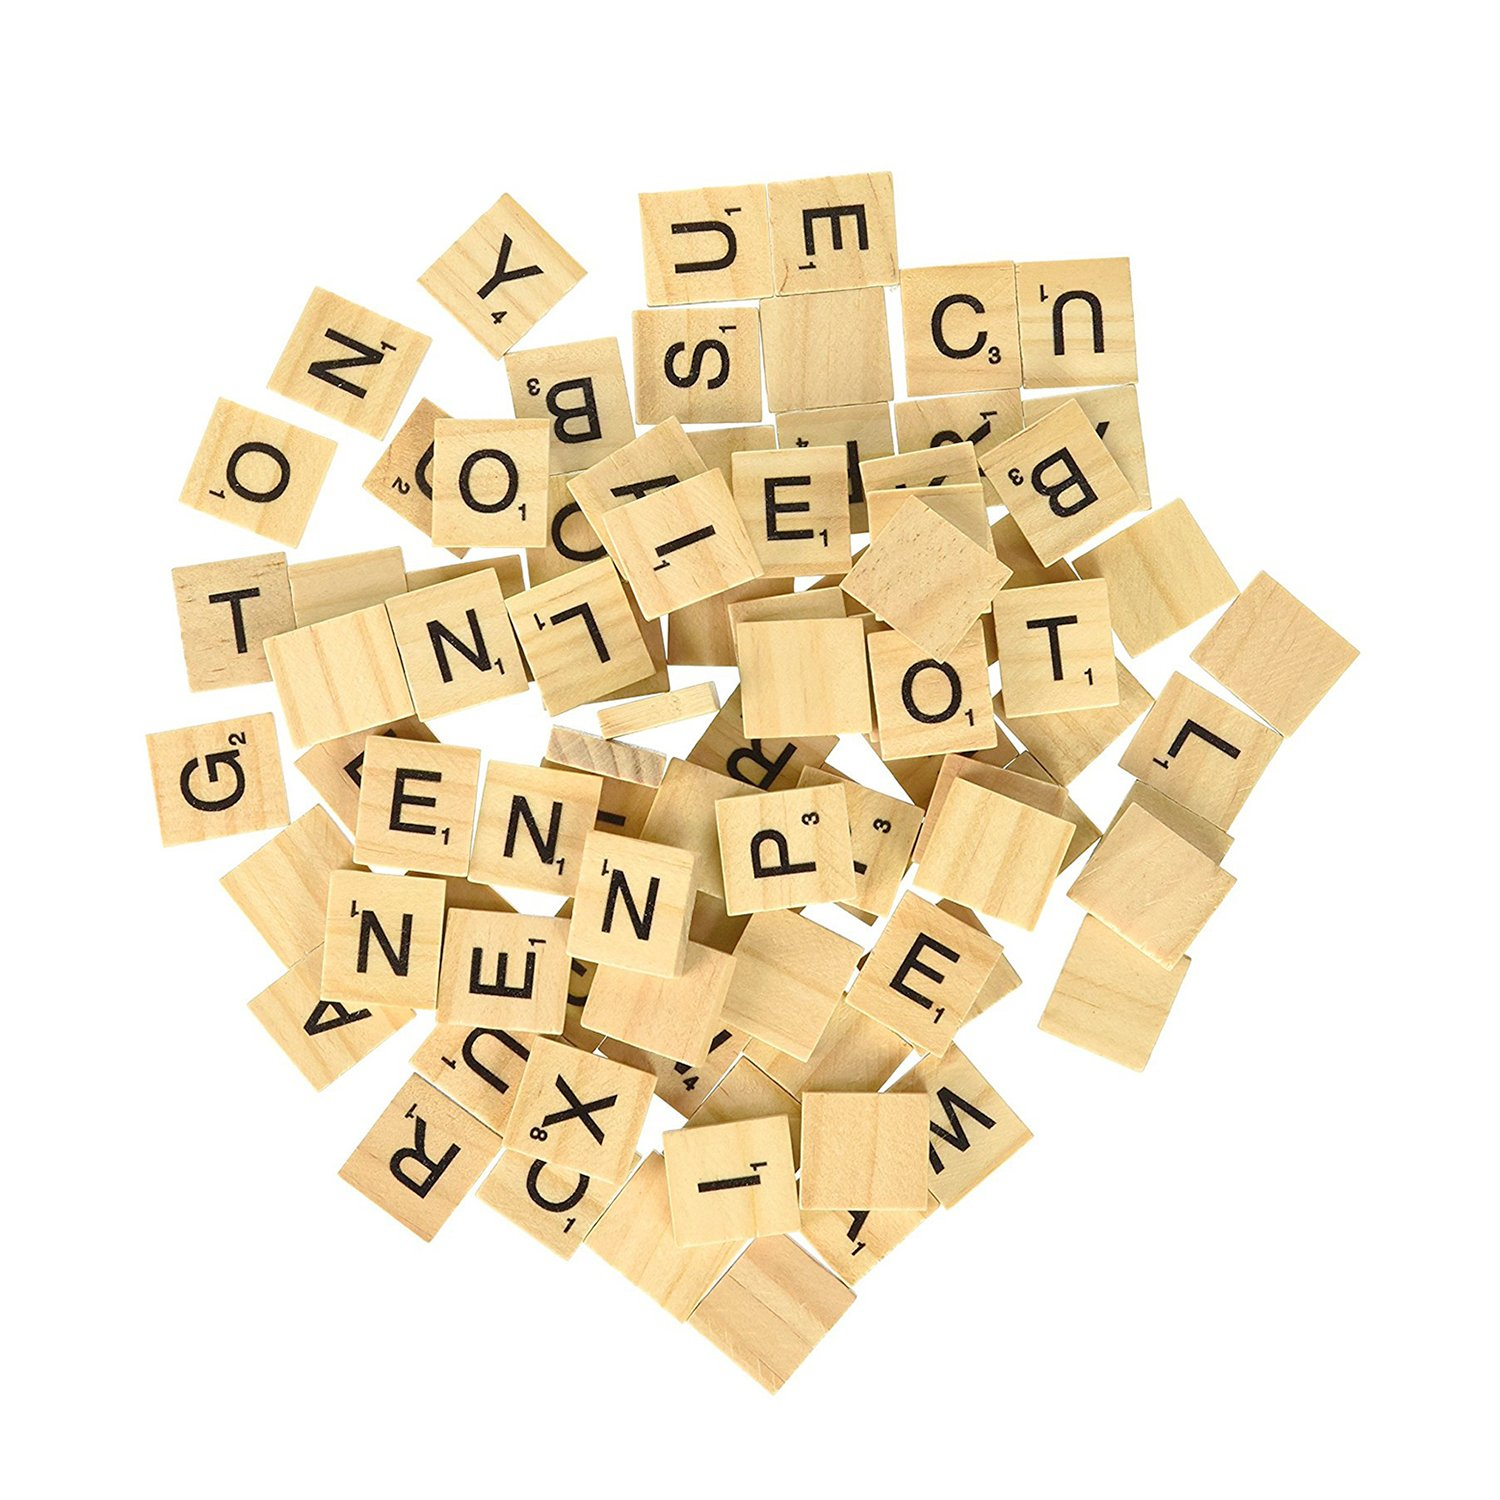 500 Wood Scrabble Tiles - NEW Scrabble Letters - Wood Pieces - 5 Complete Sets - Great for Crafts, Pendants, Spelling by Clever Delights